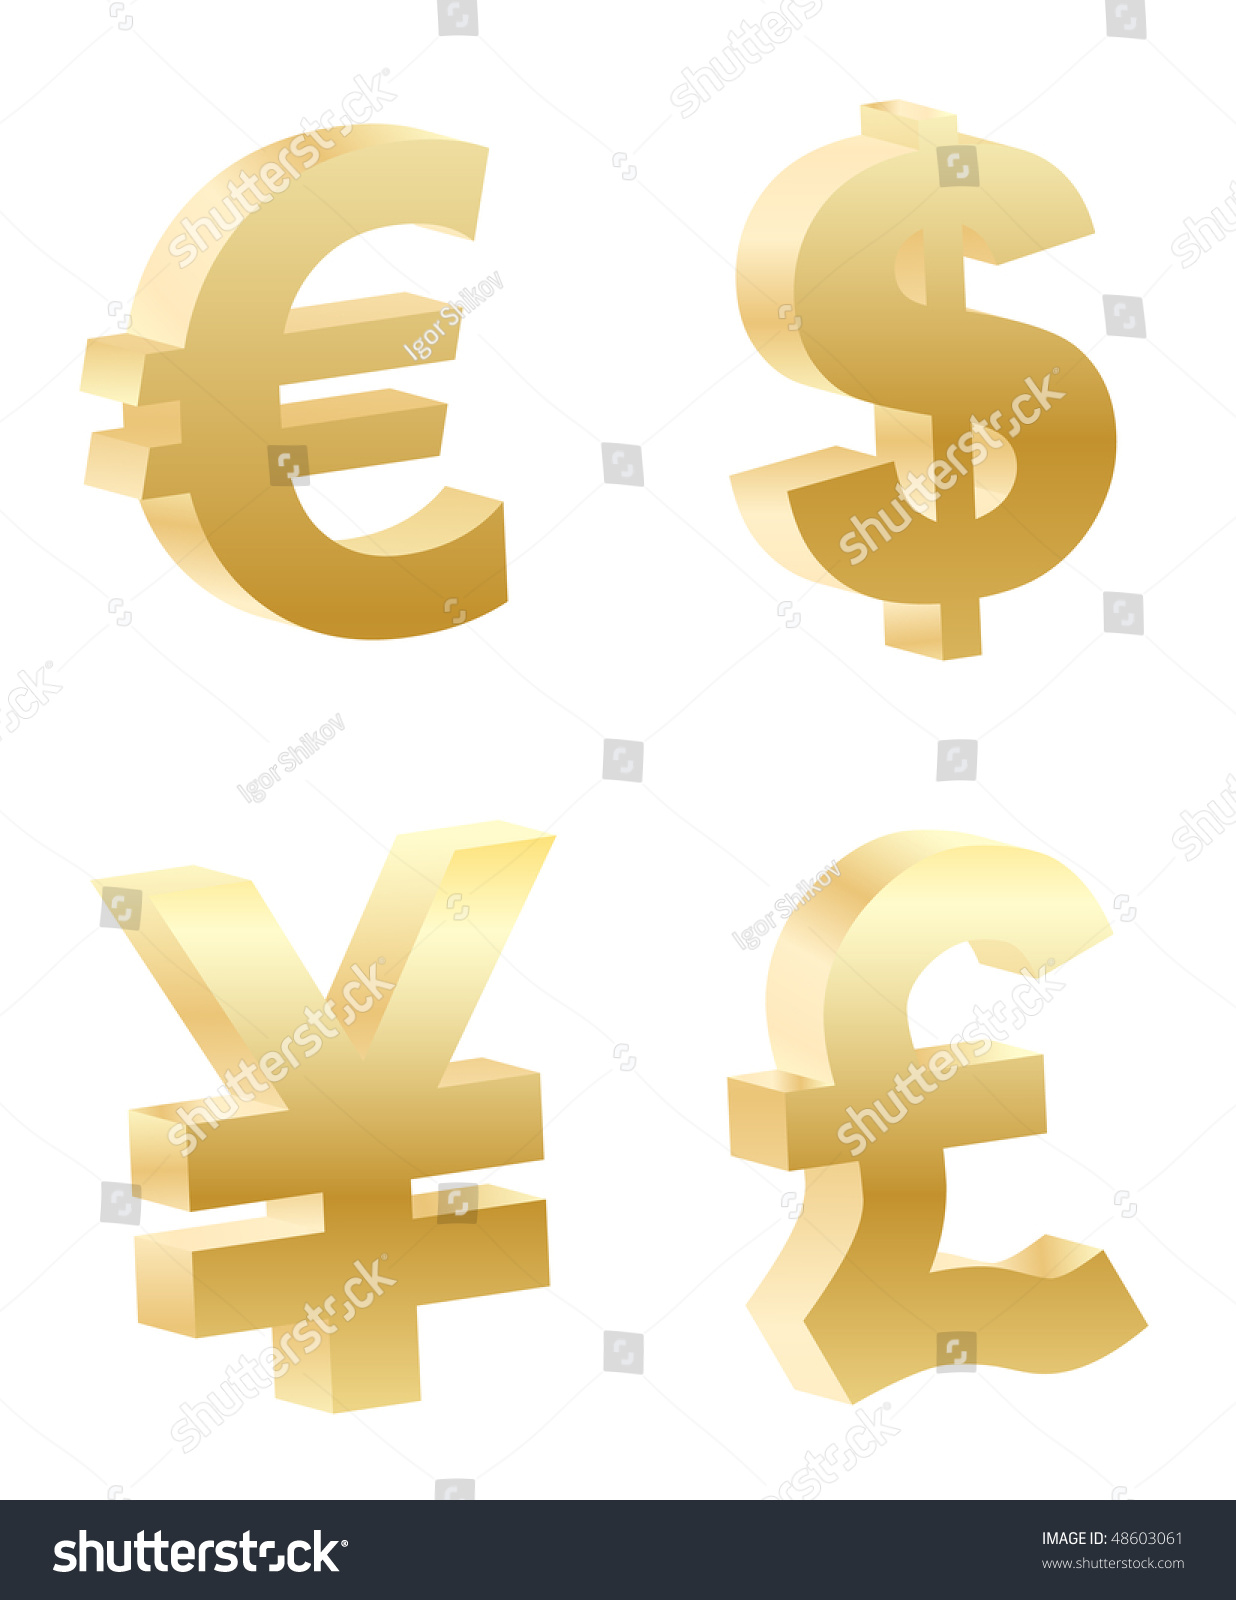 Curved Golden Money Symbols Rendered With Soft Shadows On White